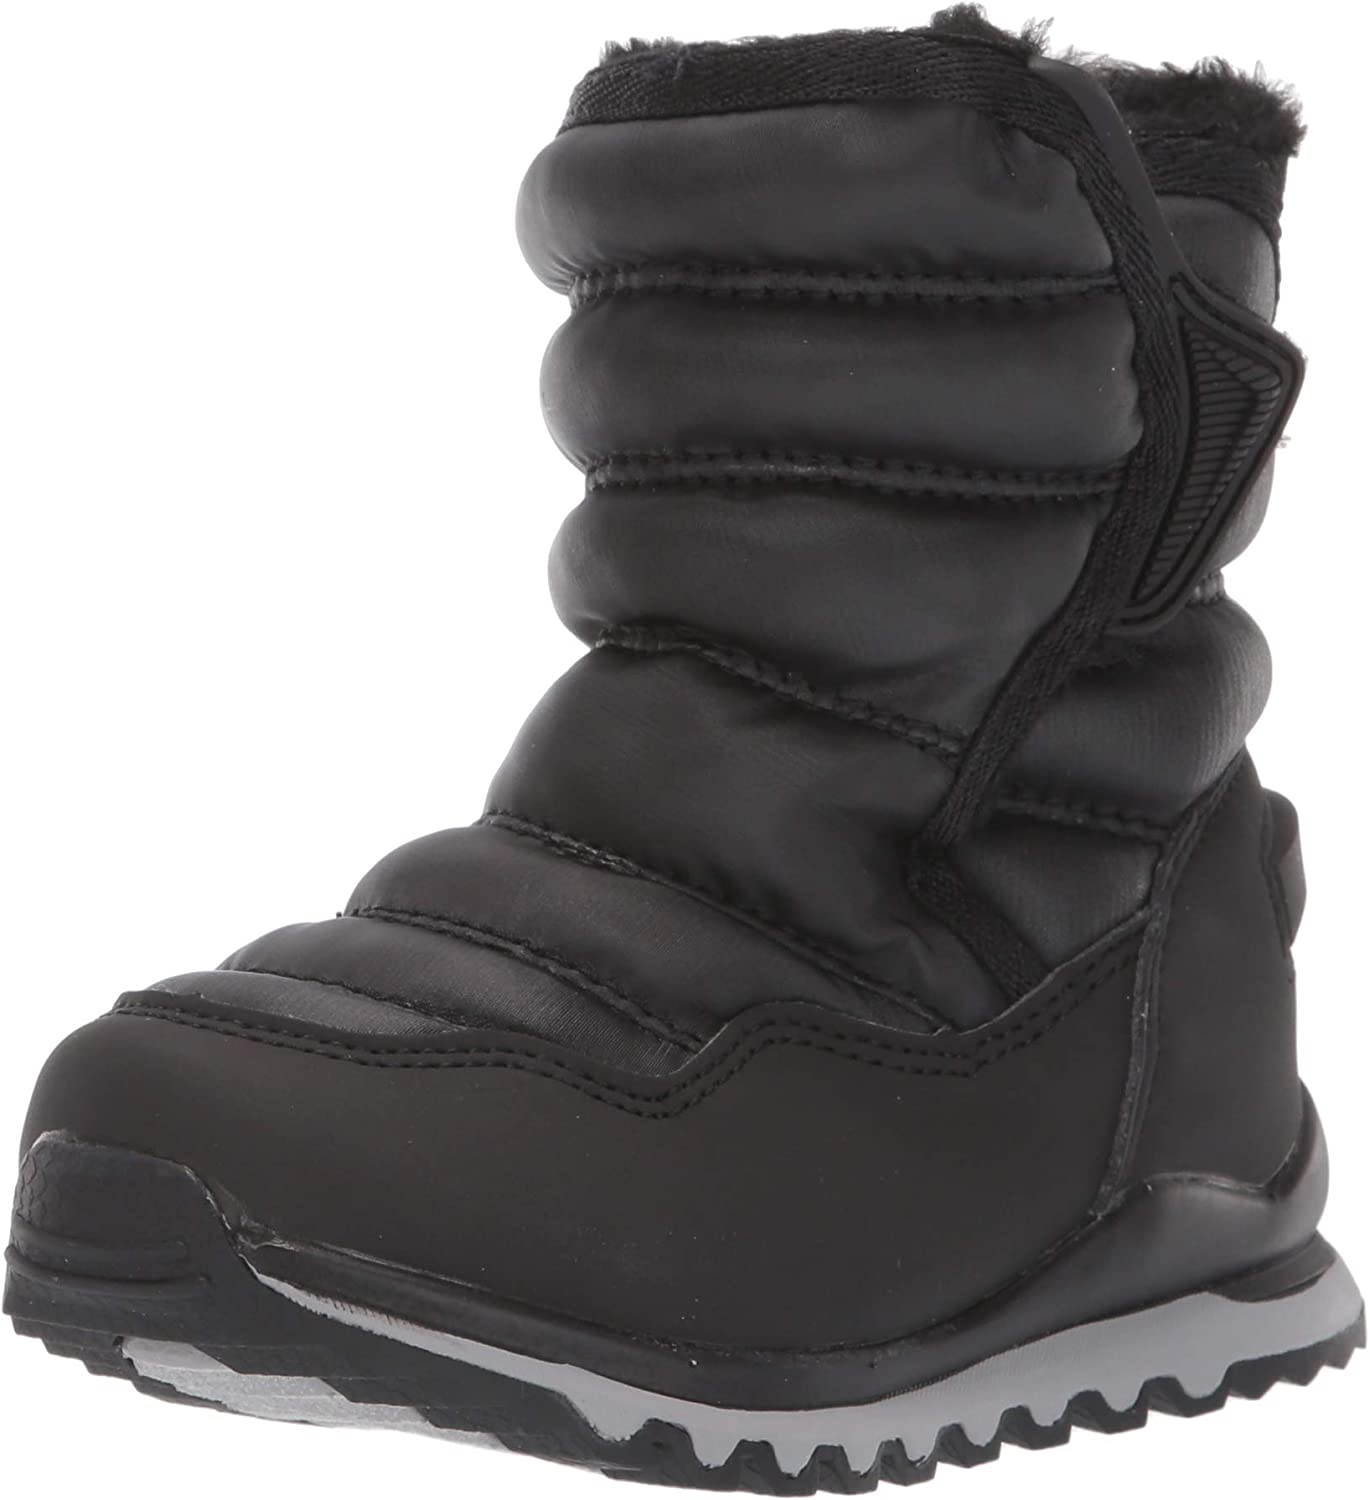 cH2O Baby Alpina 137 All Weather Snow Boots, Black, 10 Toddler